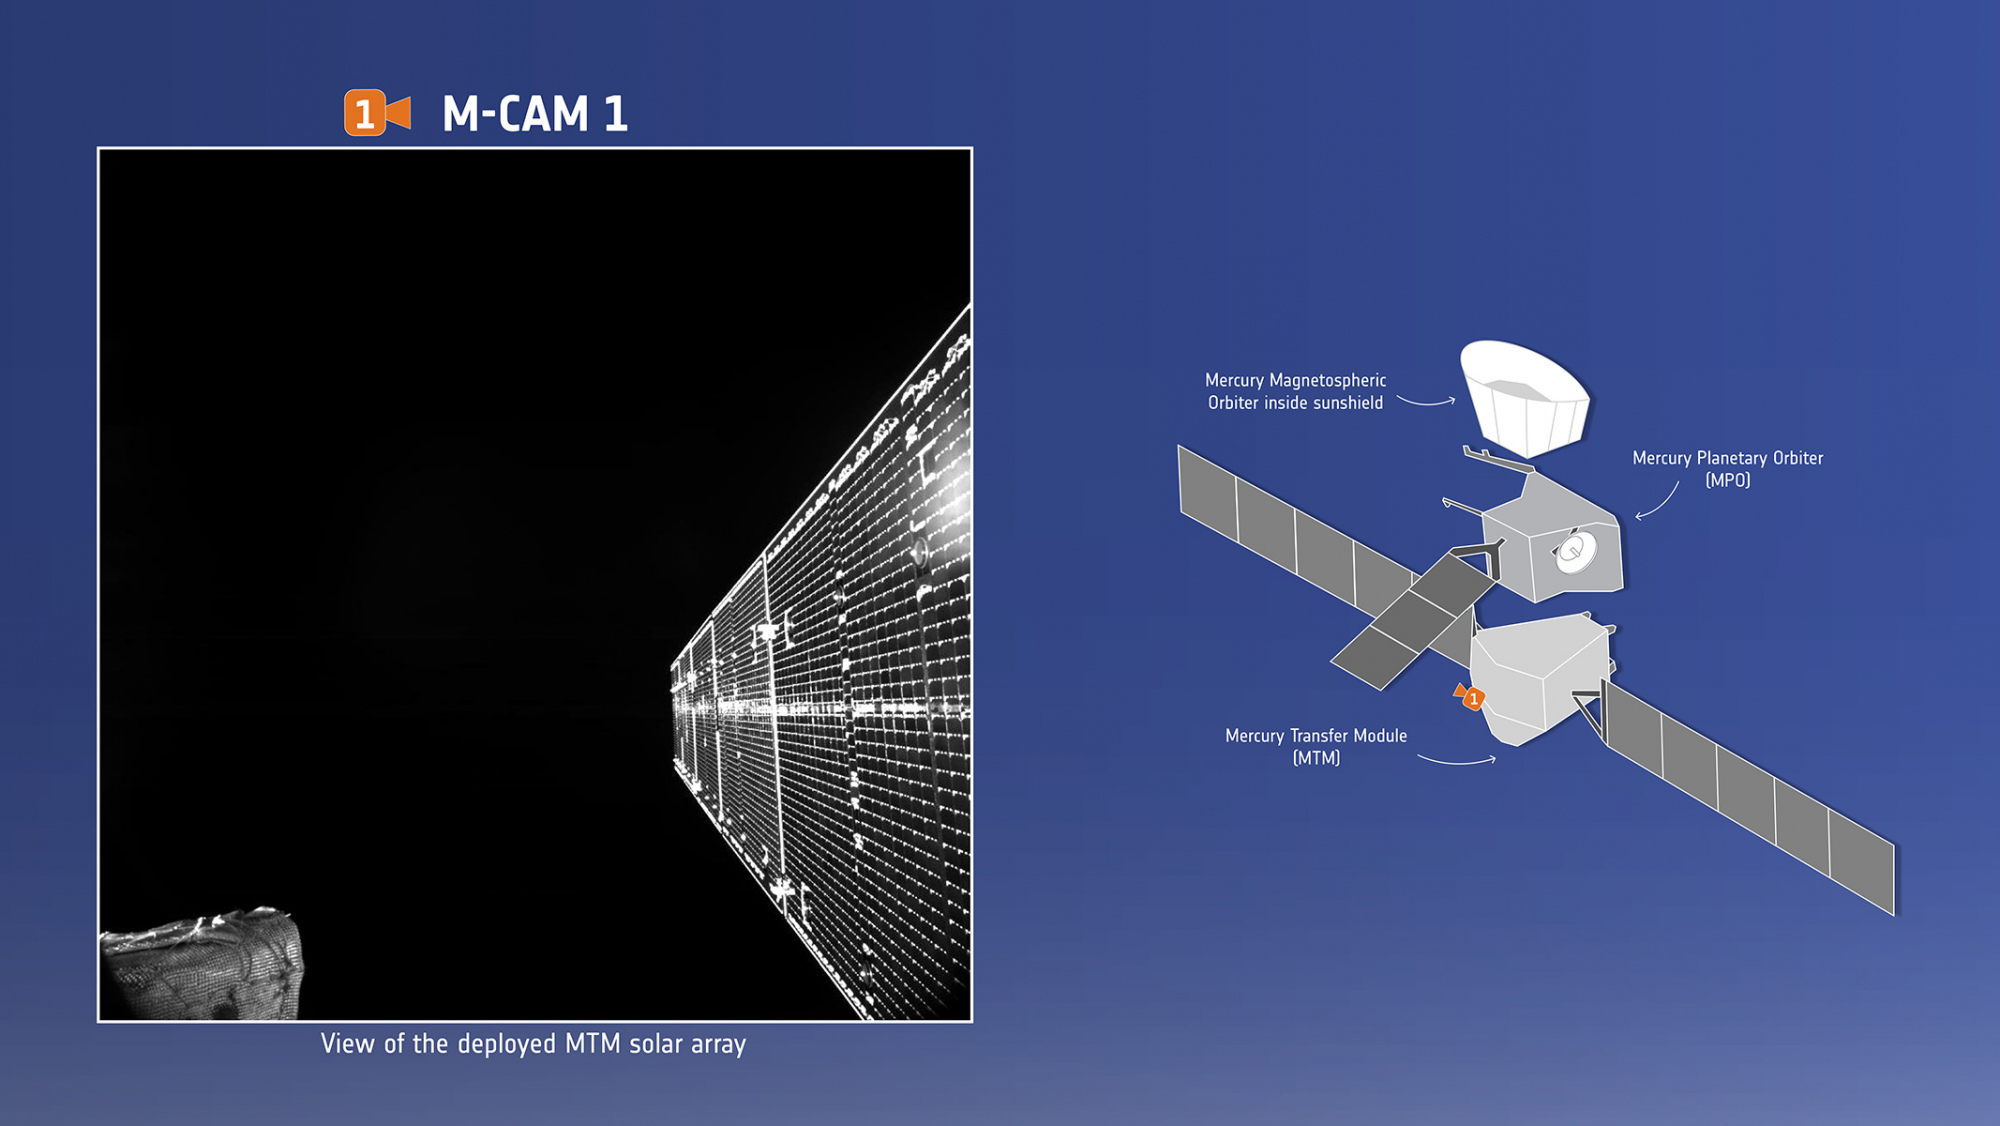 BepiColombo_s_first_image_from_space b.jpg